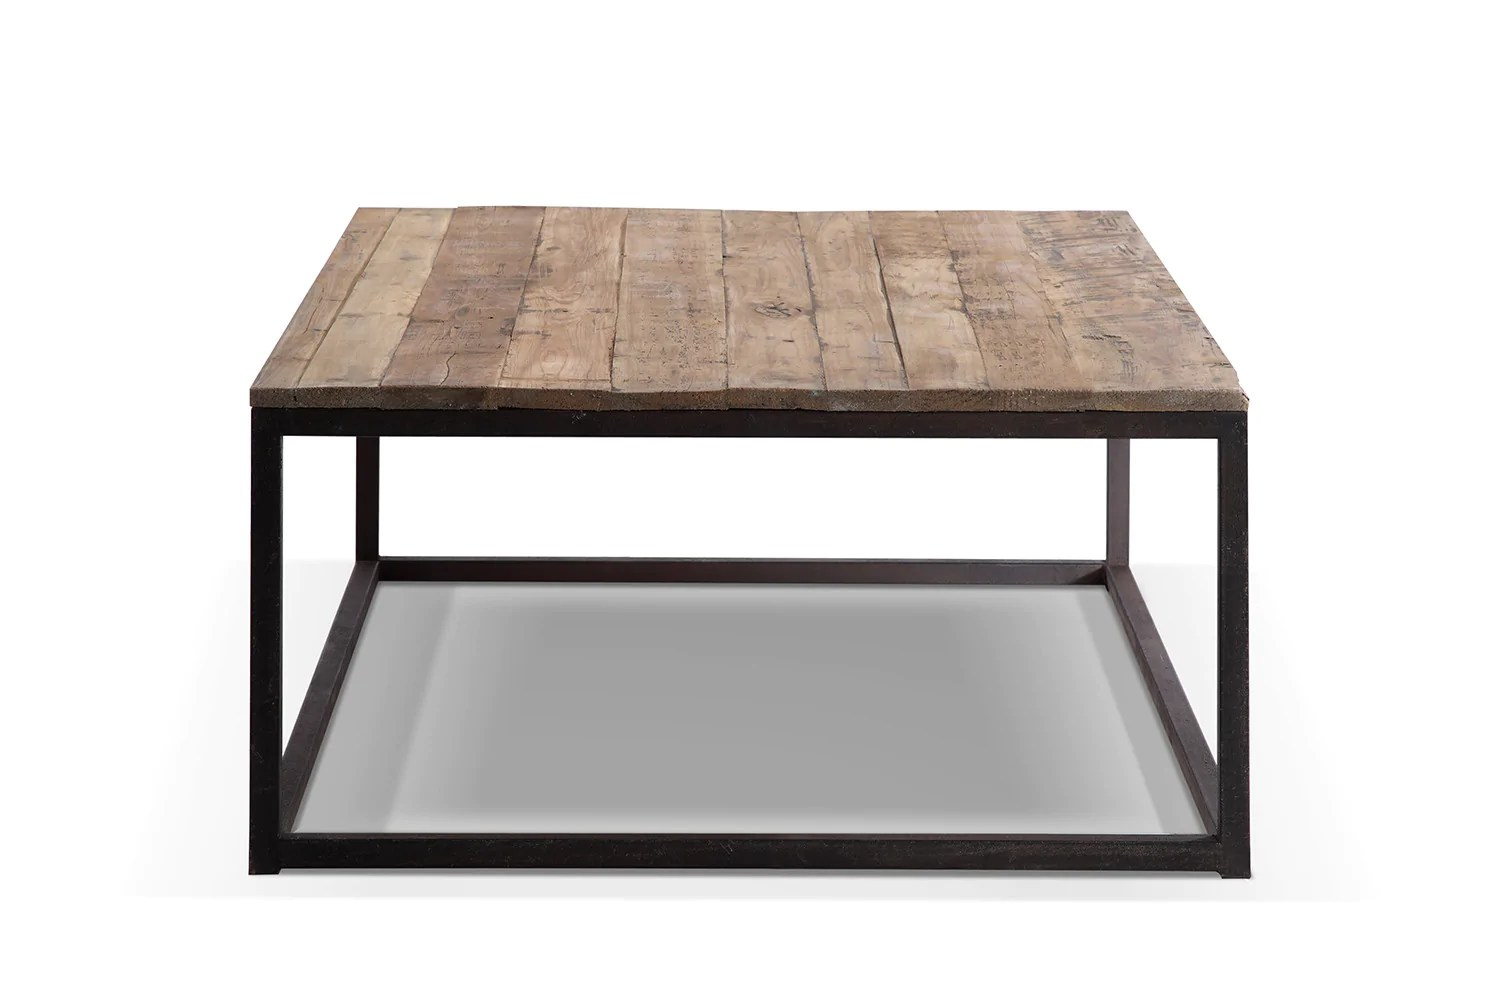 Table Basse Bois Industrielle Table Basse Industrielle En Métal Et Bois Tb02 Rose Moore